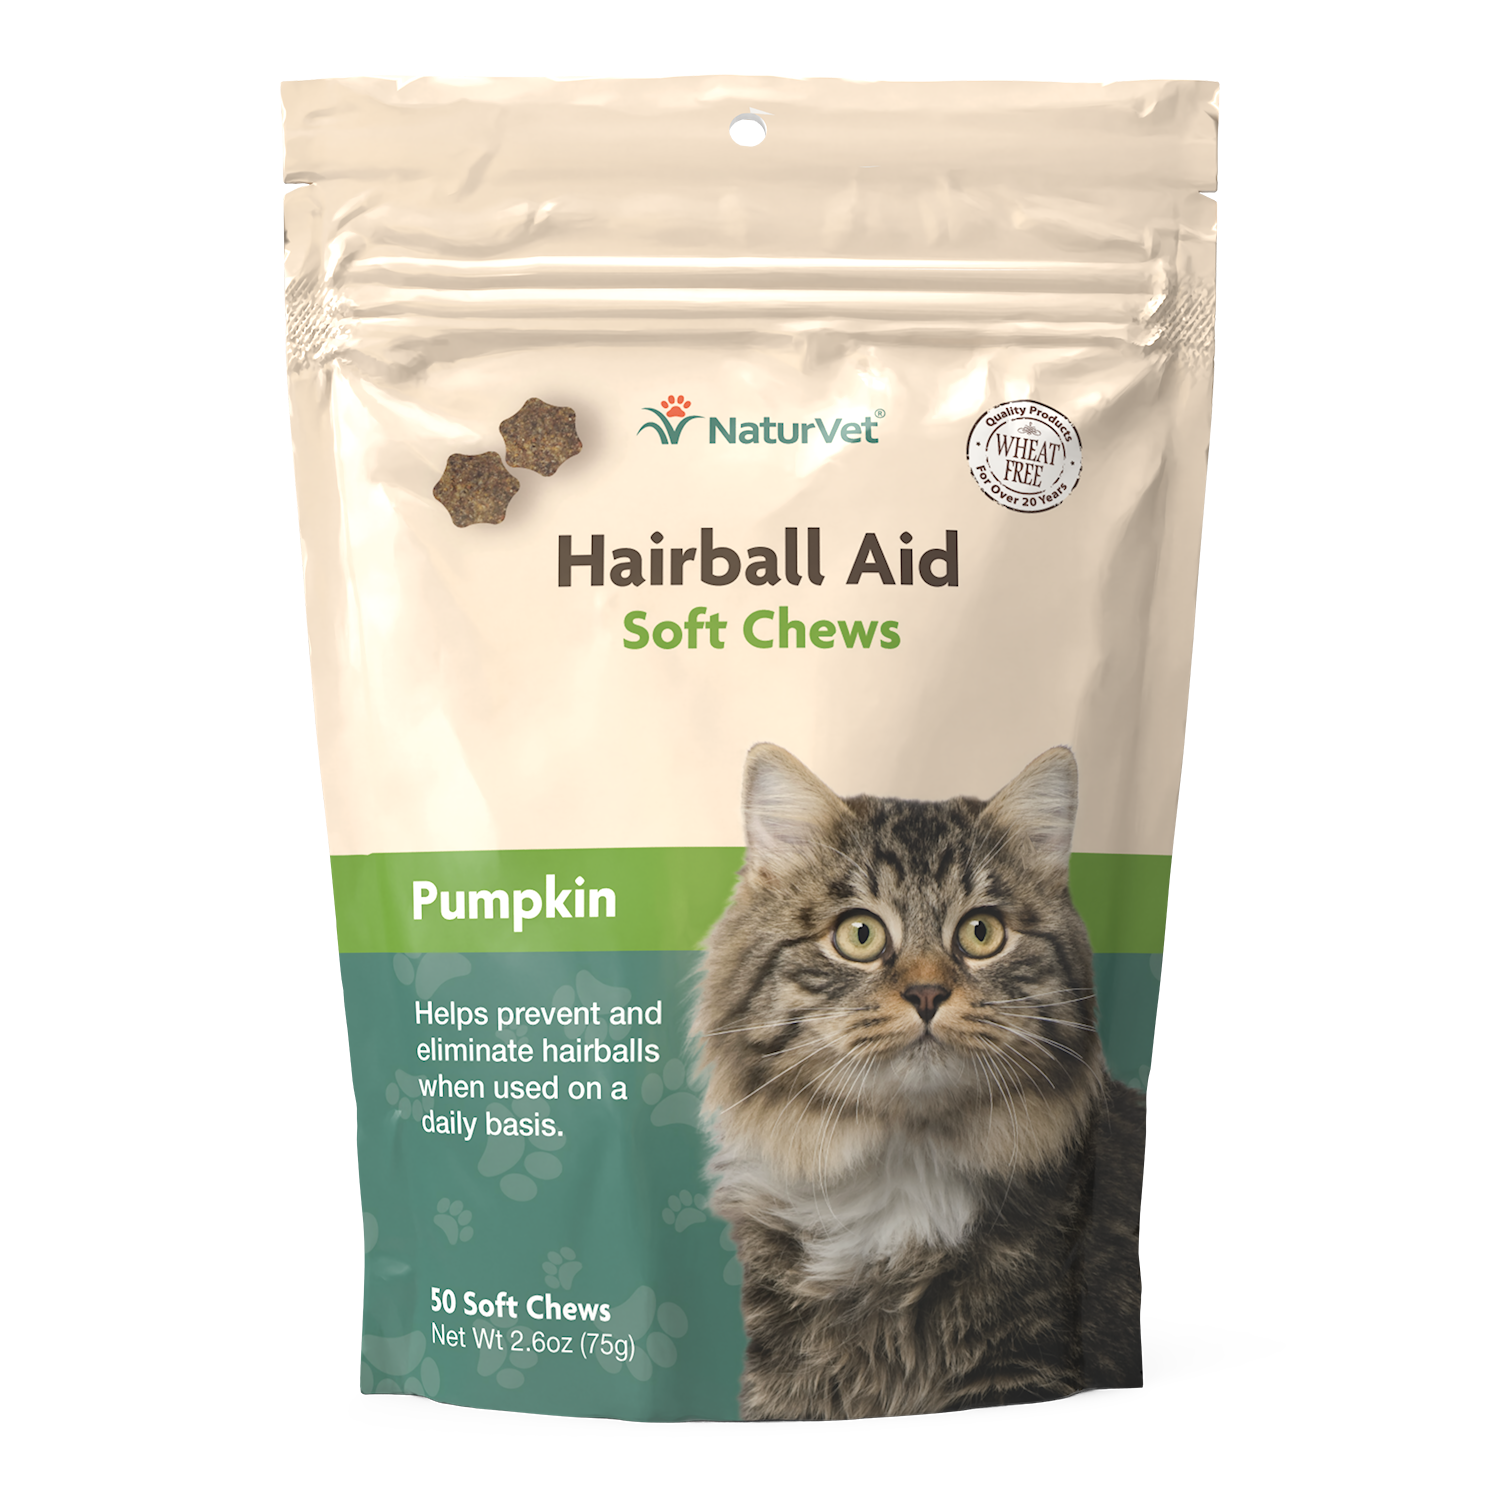 NaturVet Hairball Aid Plus Pumpkin Soft Chews for Cats, 50-count (Size: 50-count) Image